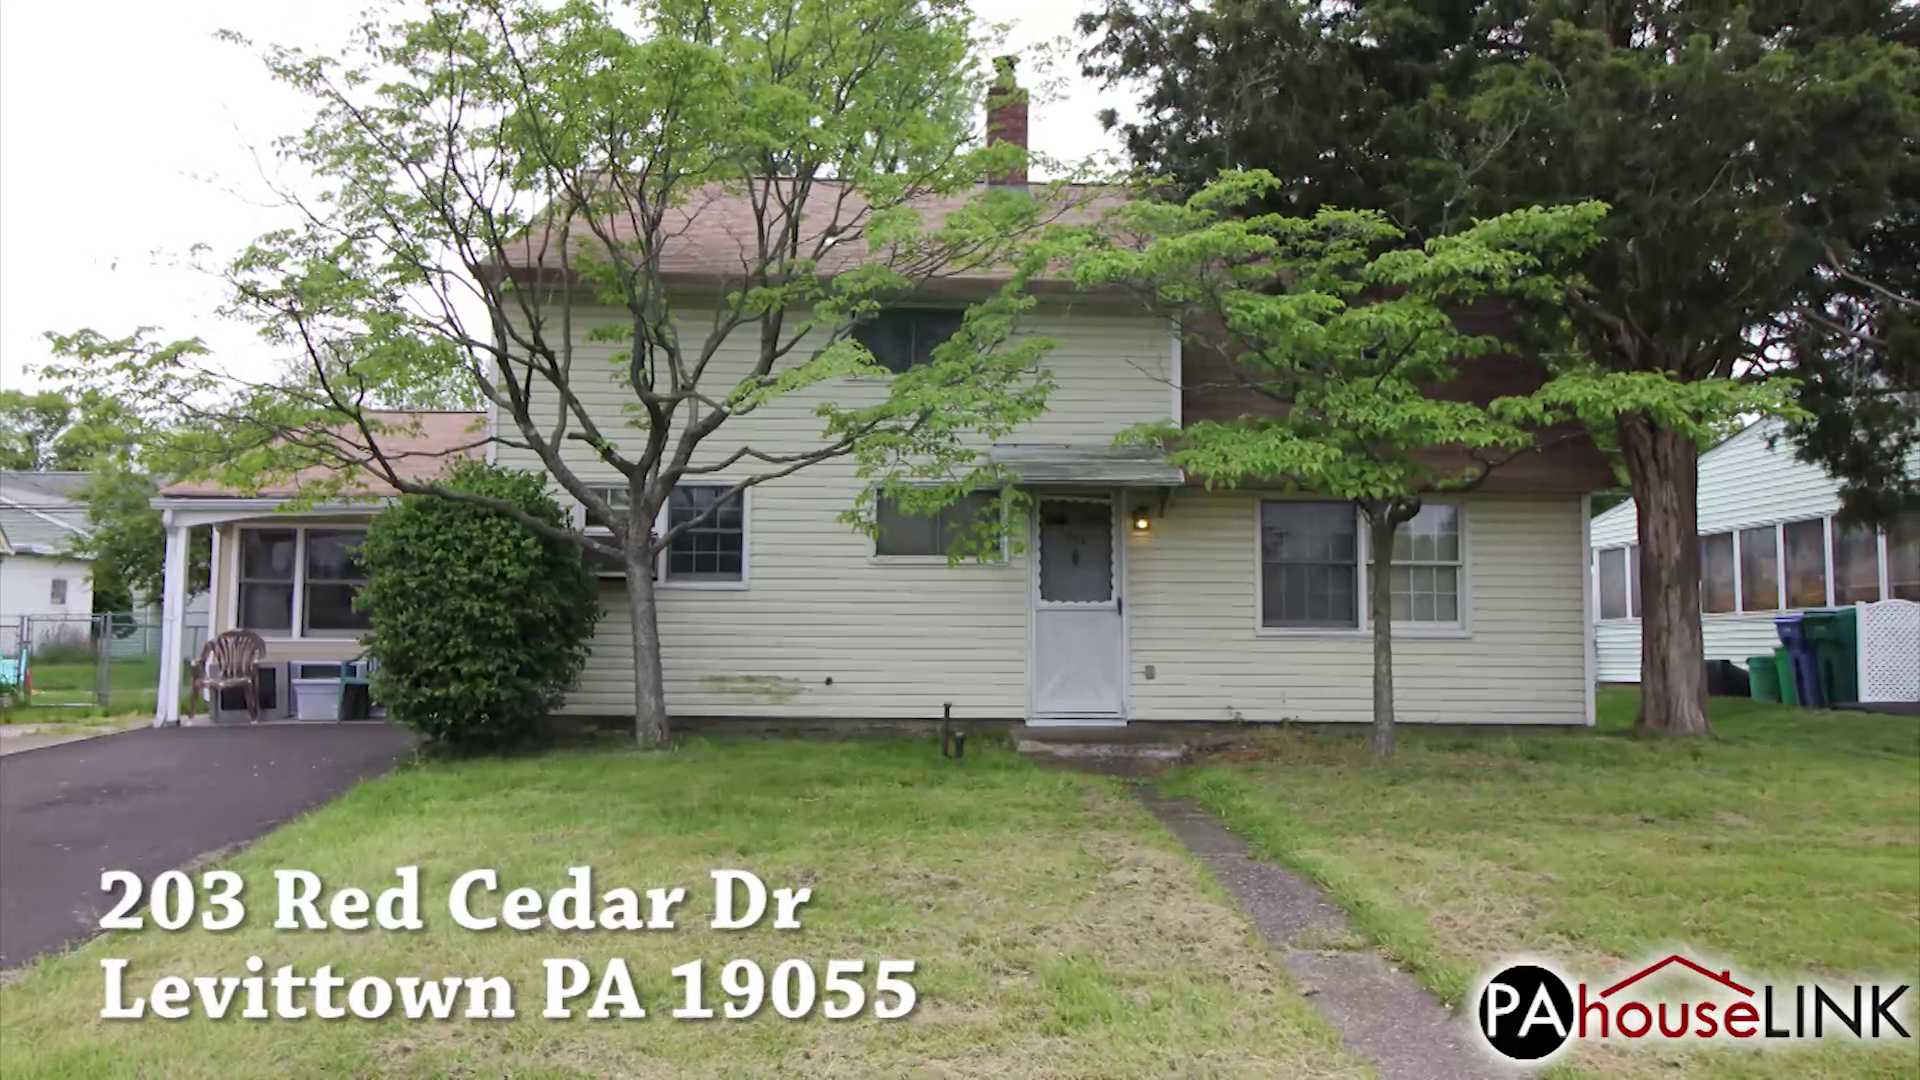 203 Red Cedar Dr Levittown PA 19055 | Coming Soon Foreclosure Properties Levittown PA 19055